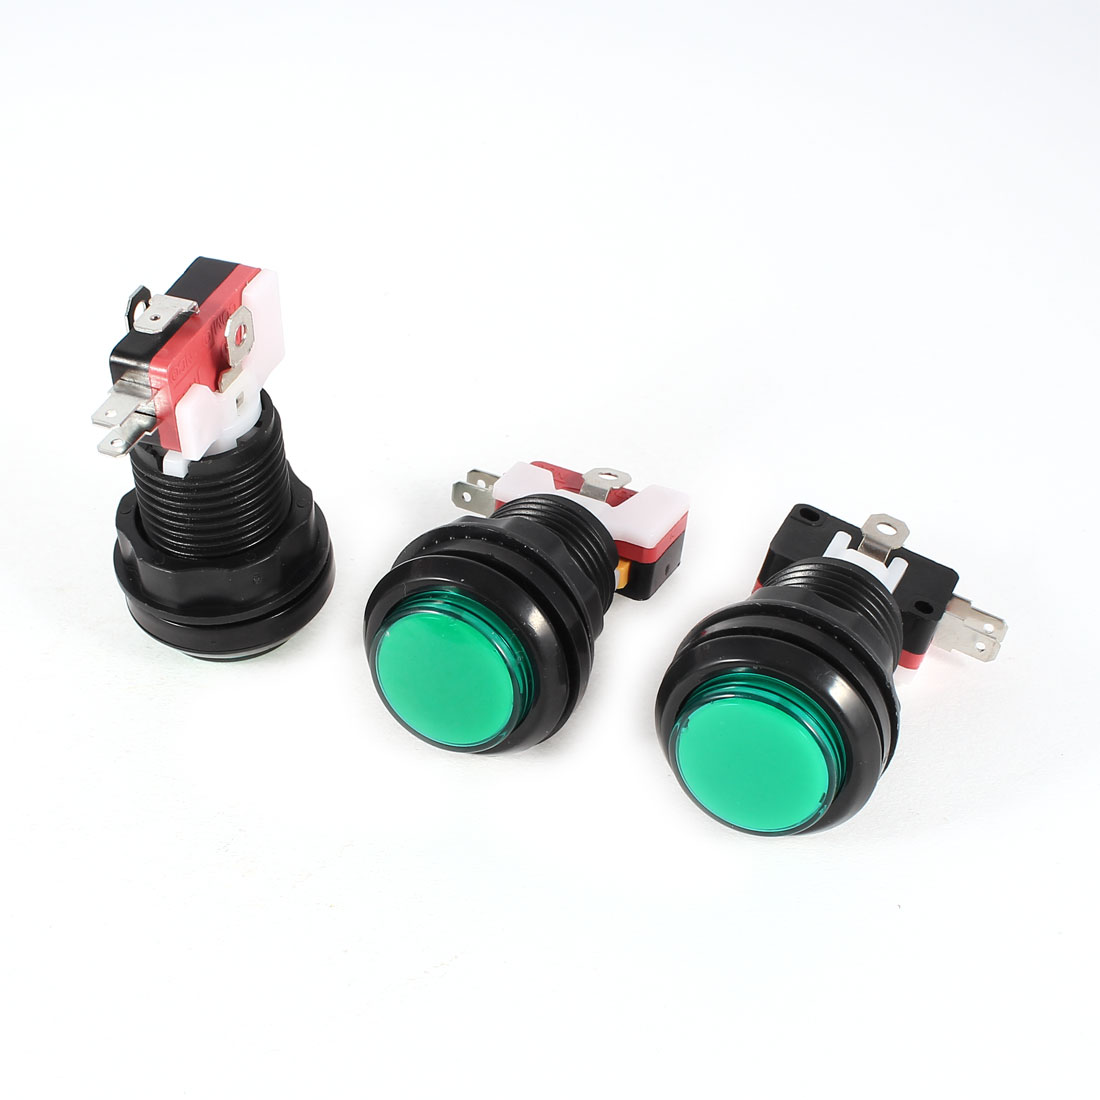 3 Pcs Panel Mount 3Pin SPDT NC Green Push Button Momentary Switch AC 100-240V